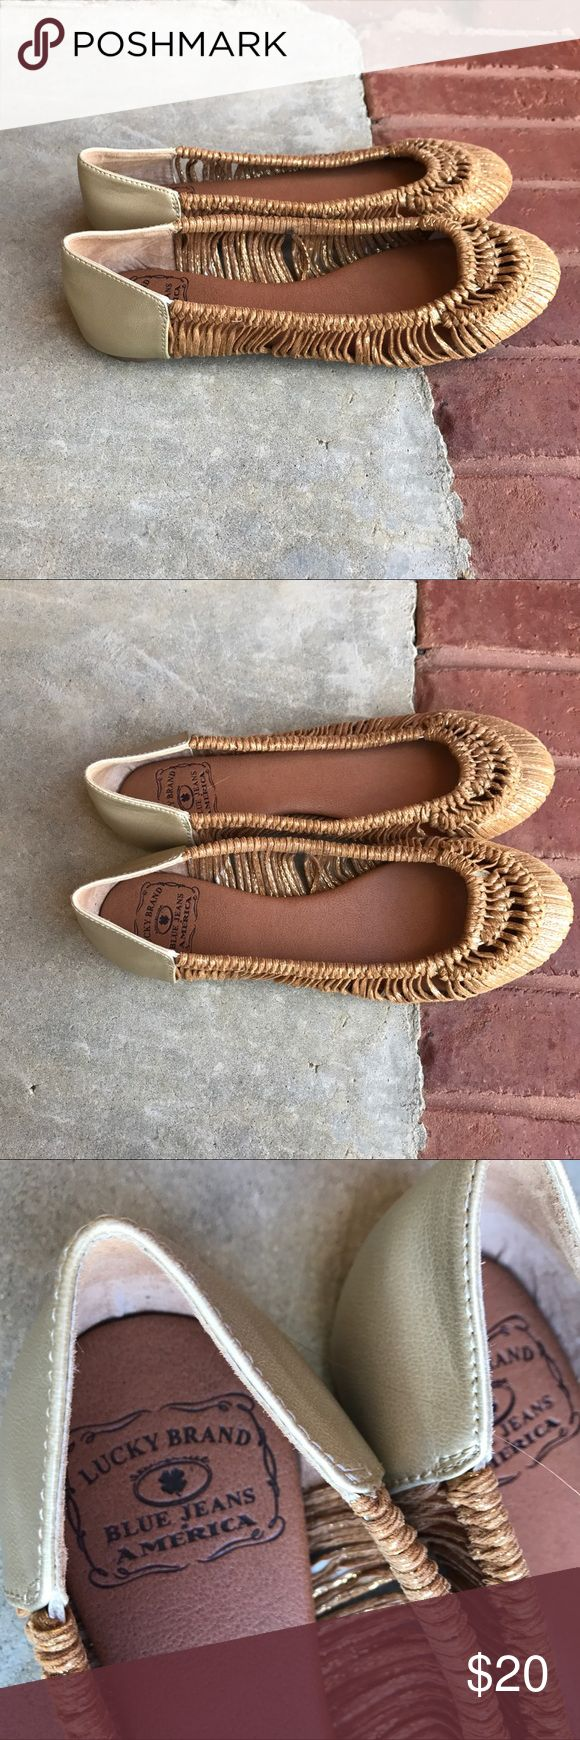 Lucky Brand flats brown and gold Lucky Brand Flats Enza Camel Gold Woven Ballet Shoes slip on Wmns sz 7.5. Worn maybe twice. No major flaws. See photos to guarantee your standards are met. Ask questions Lucky Brand Shoes Flats & Loafers